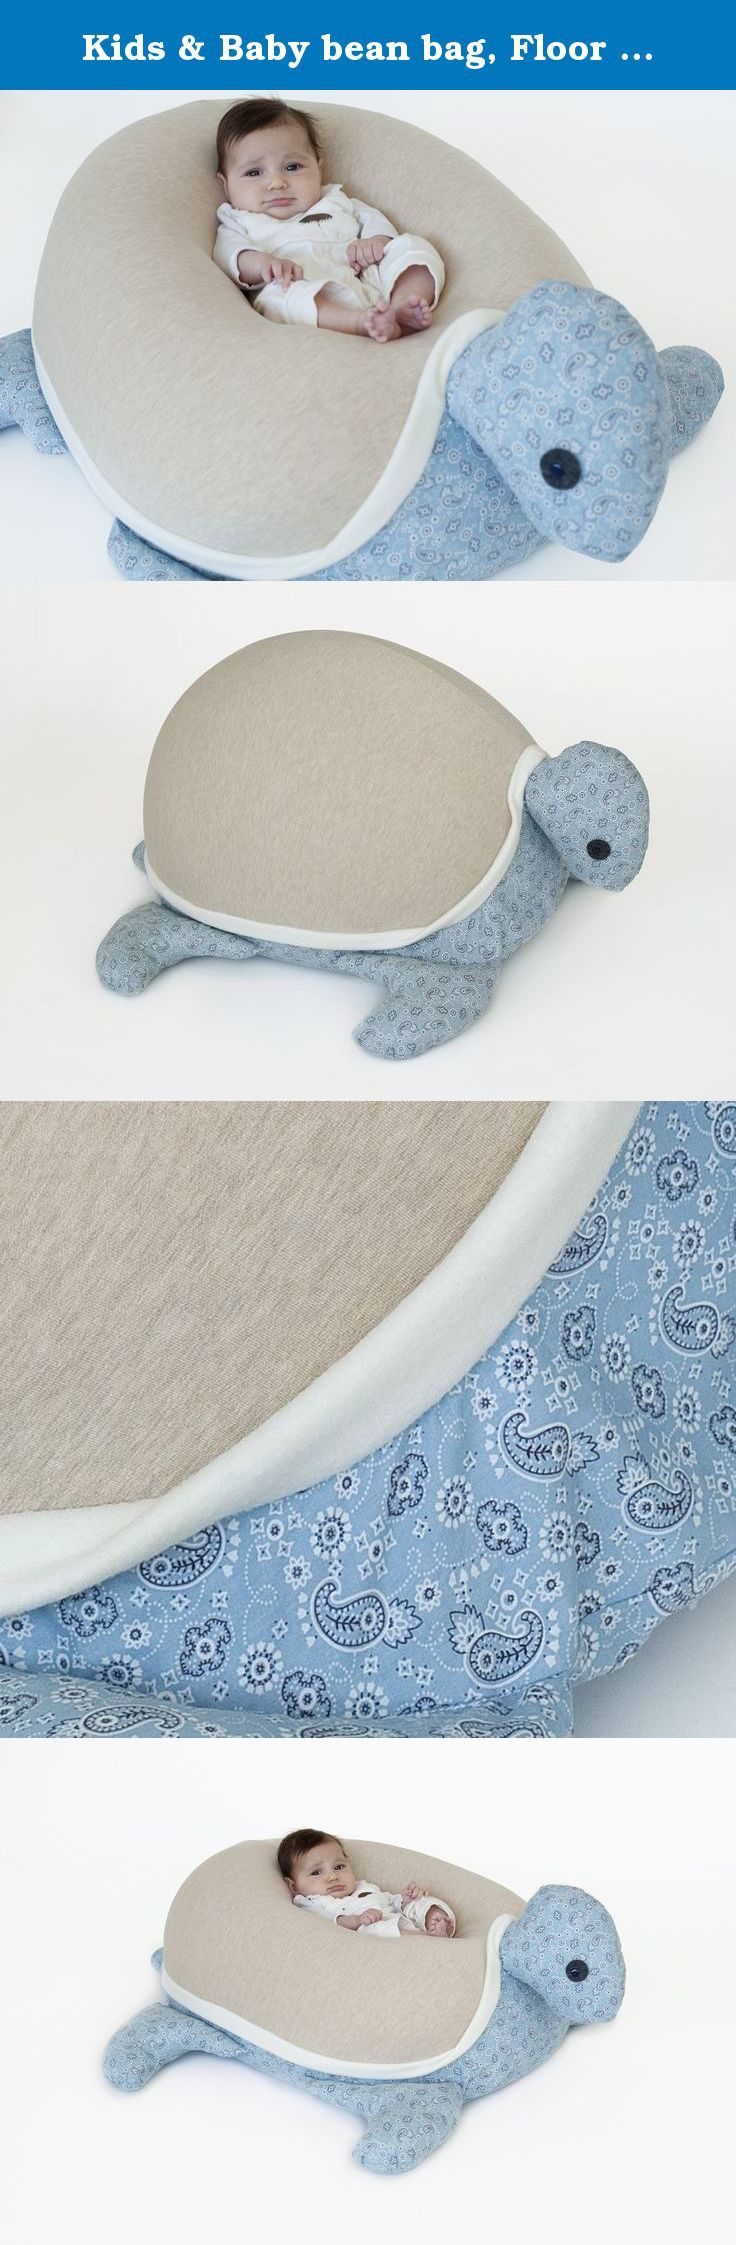 Animal Pillow Relaxation : 1000+ ideas about Baby Bean Bag Chair on Pinterest Baby bean bags, Bean bag pillow and Huge ...